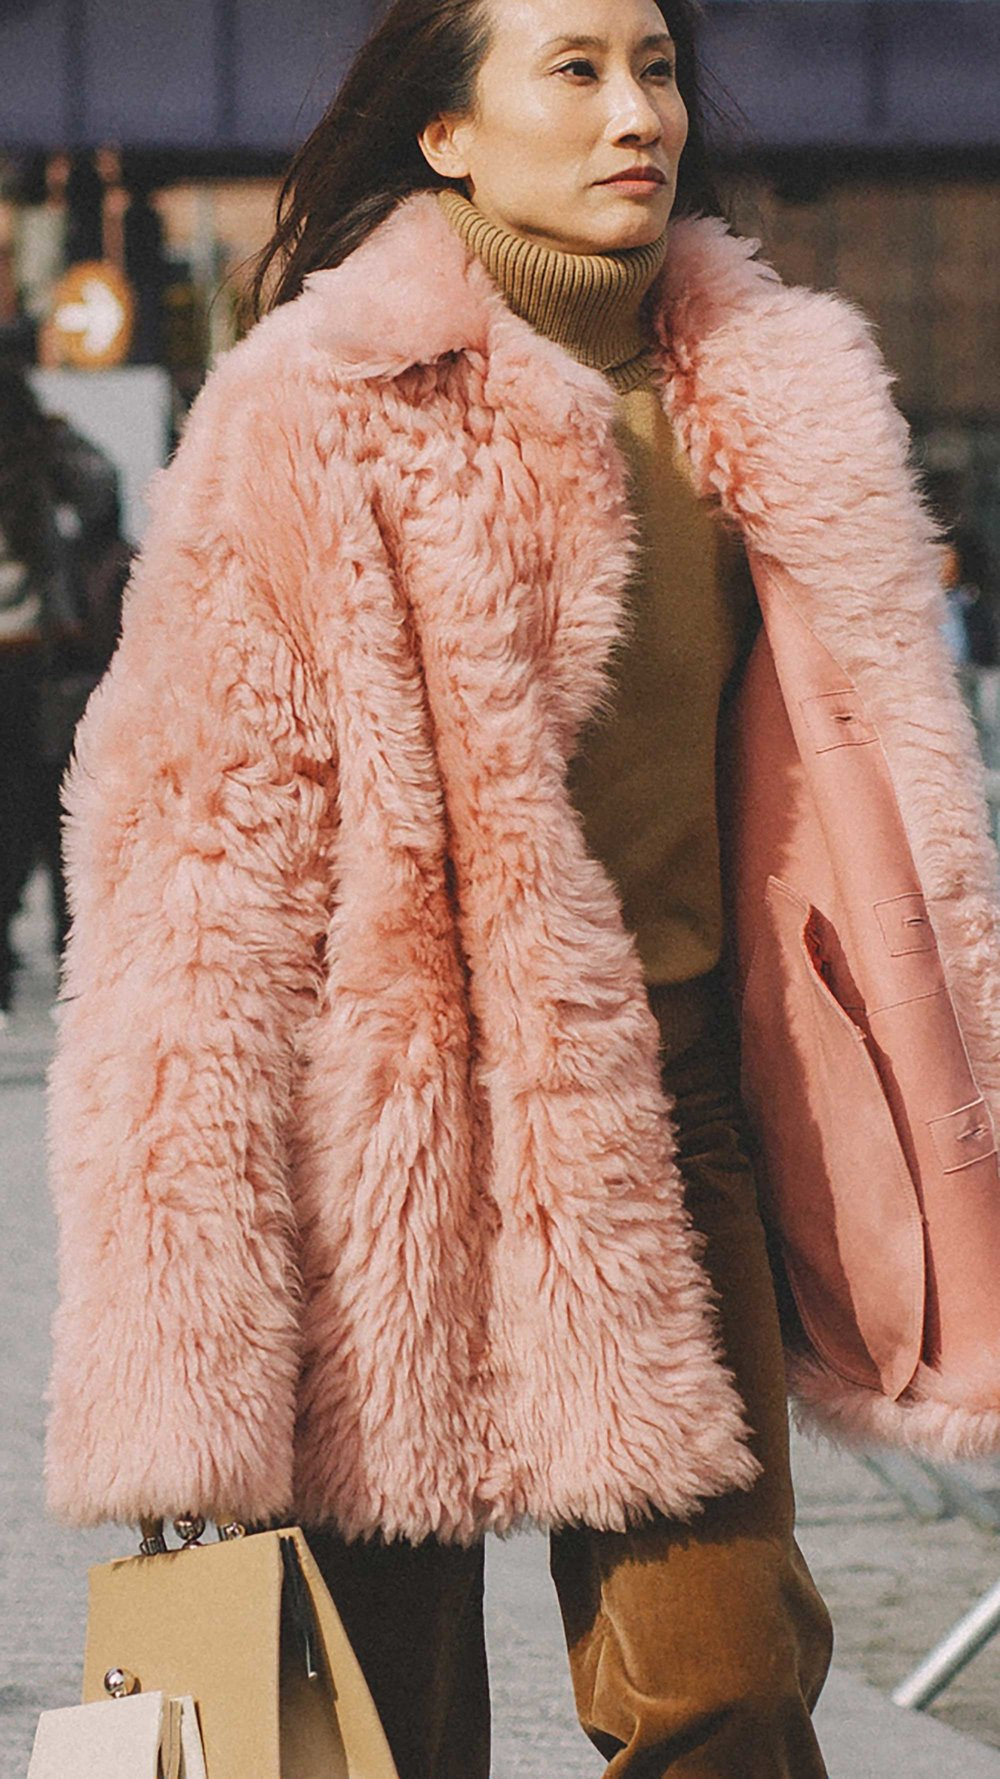 20 irresistible pastel outfit ideas for winter from New York Fashion Week street style9.jpg